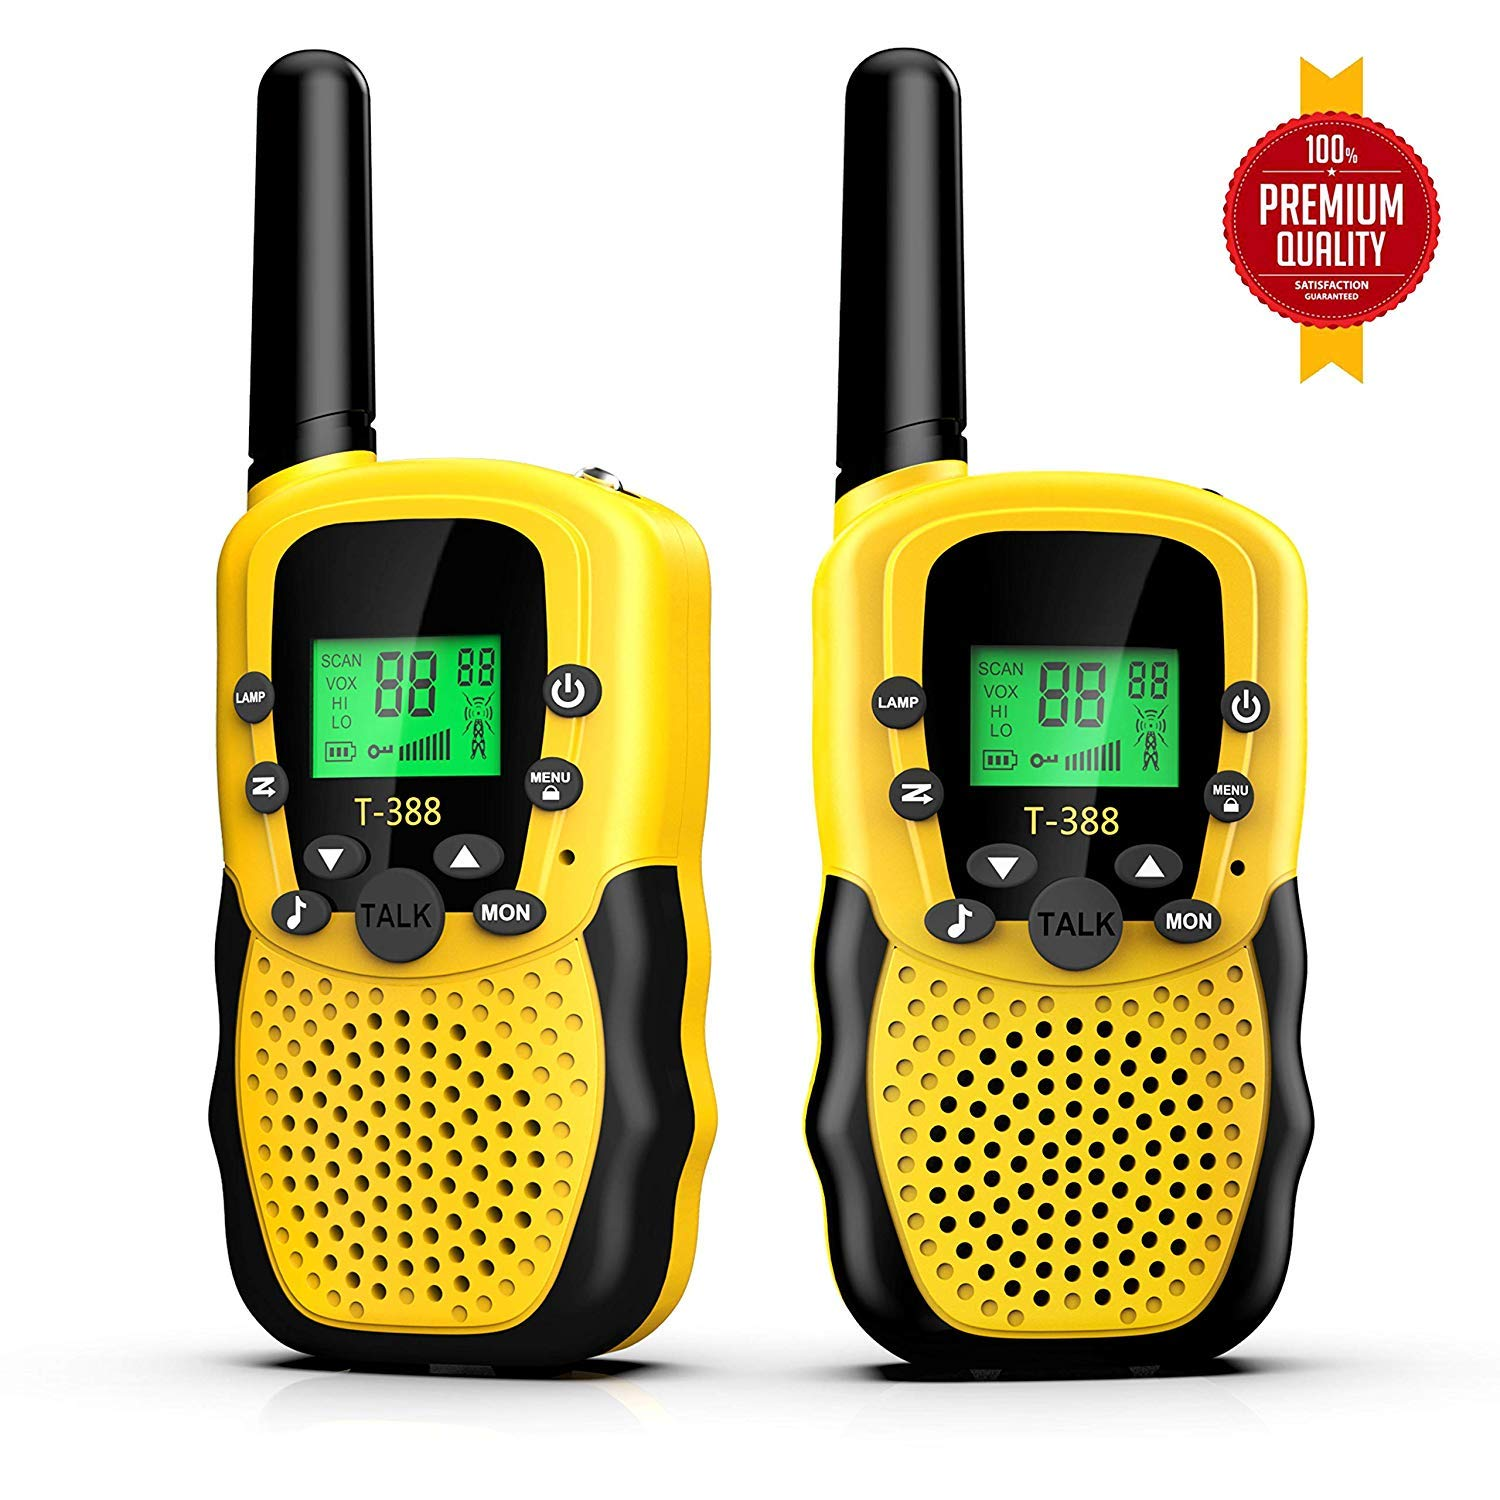 Kids Walkie Talkies, Walkie Talkies for Boys and Girls, 22 Channels 10 Customized Ringtones with Flashlight for Outdoors Good Parenting Toys by VERDUO (Image #1)